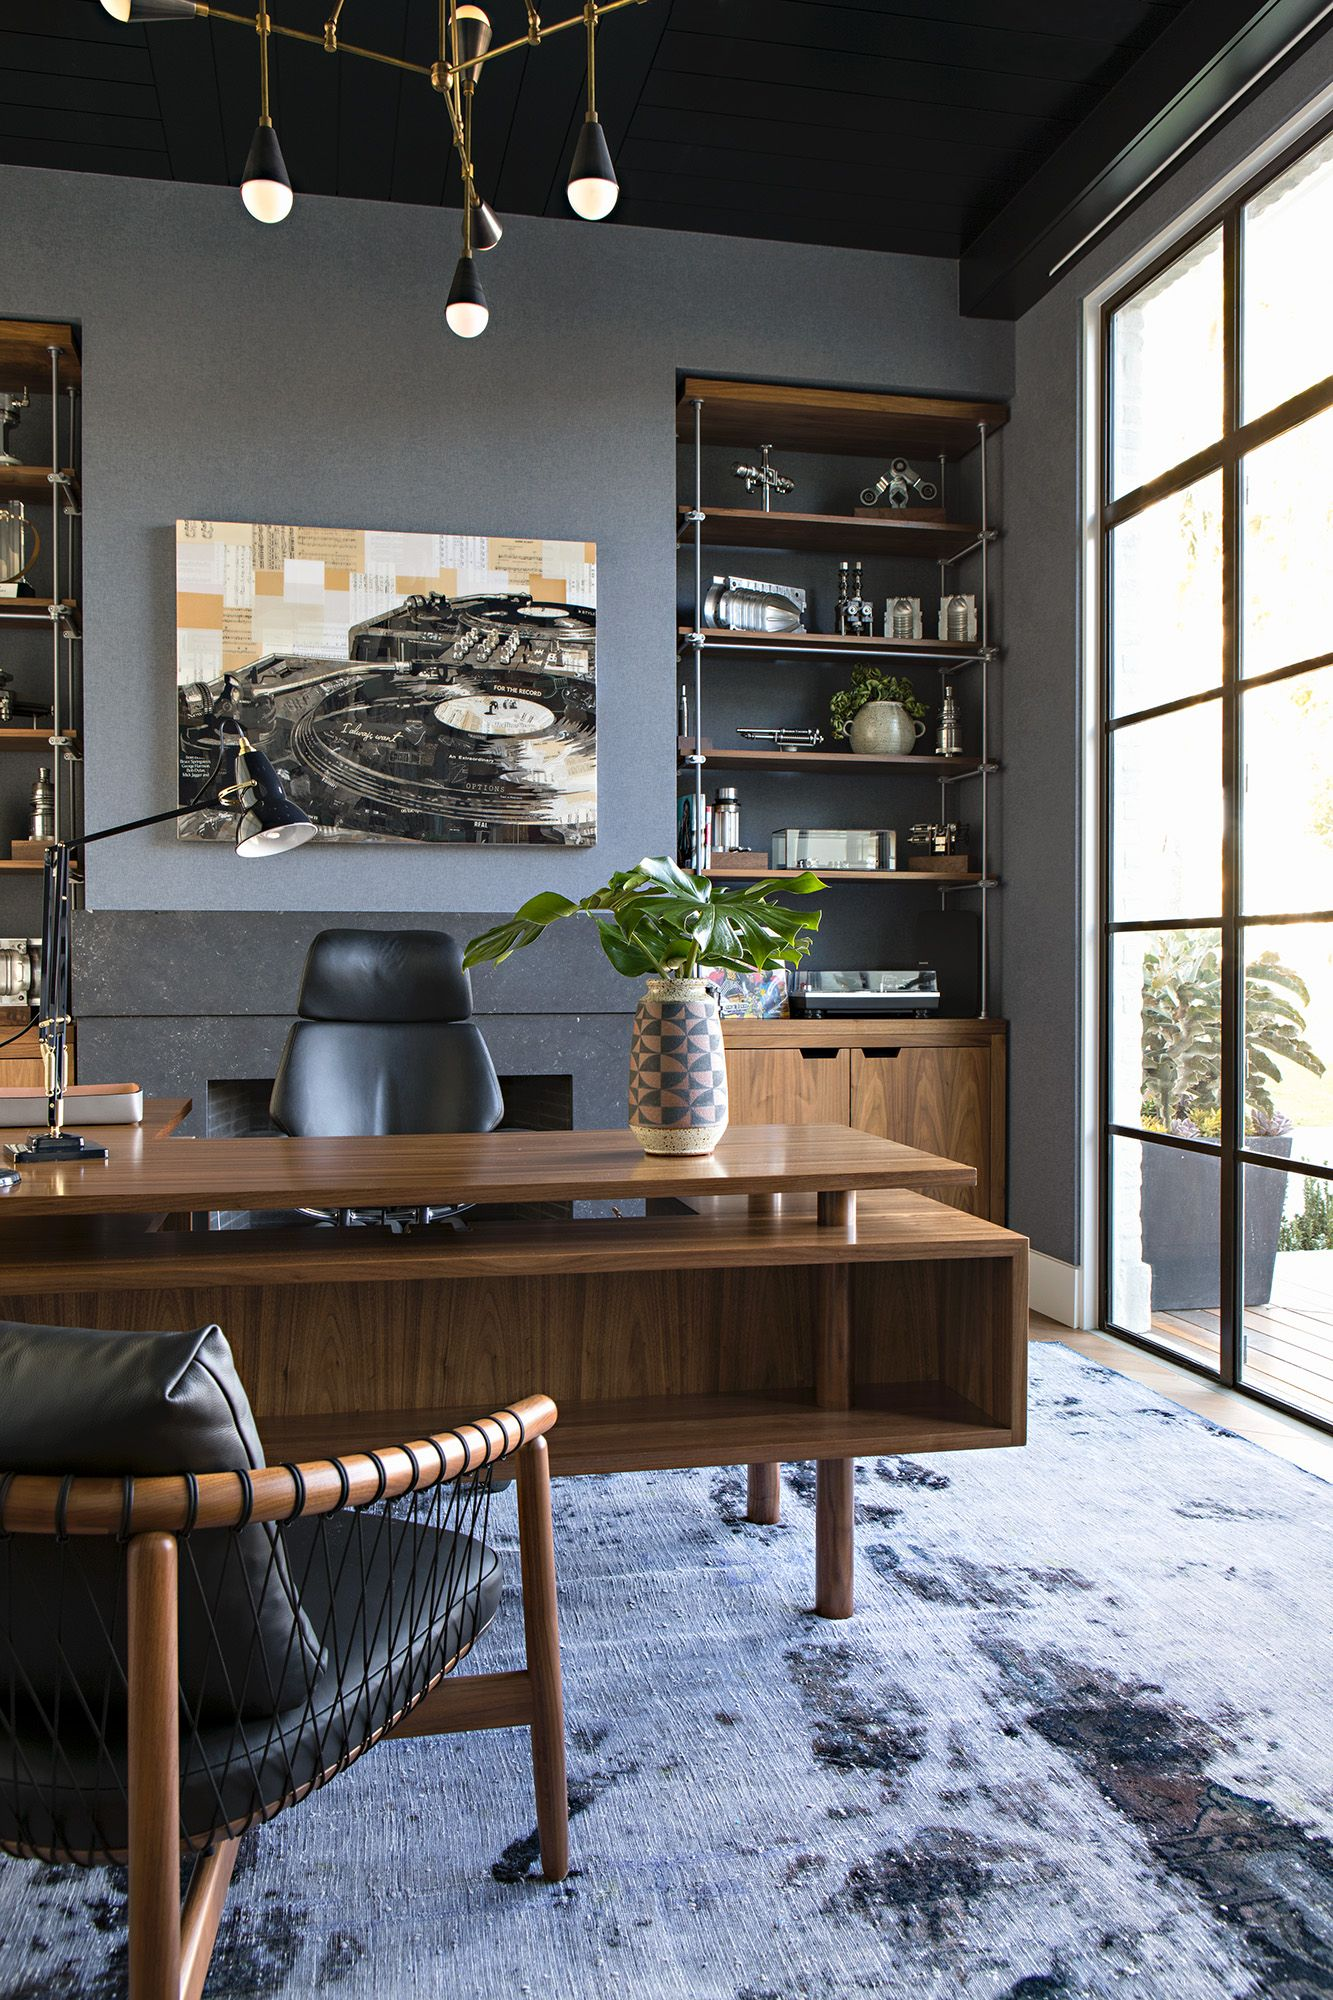 Home Office Room Design: House Tour: Inside A Sun-Drenched Newport Beach Abode